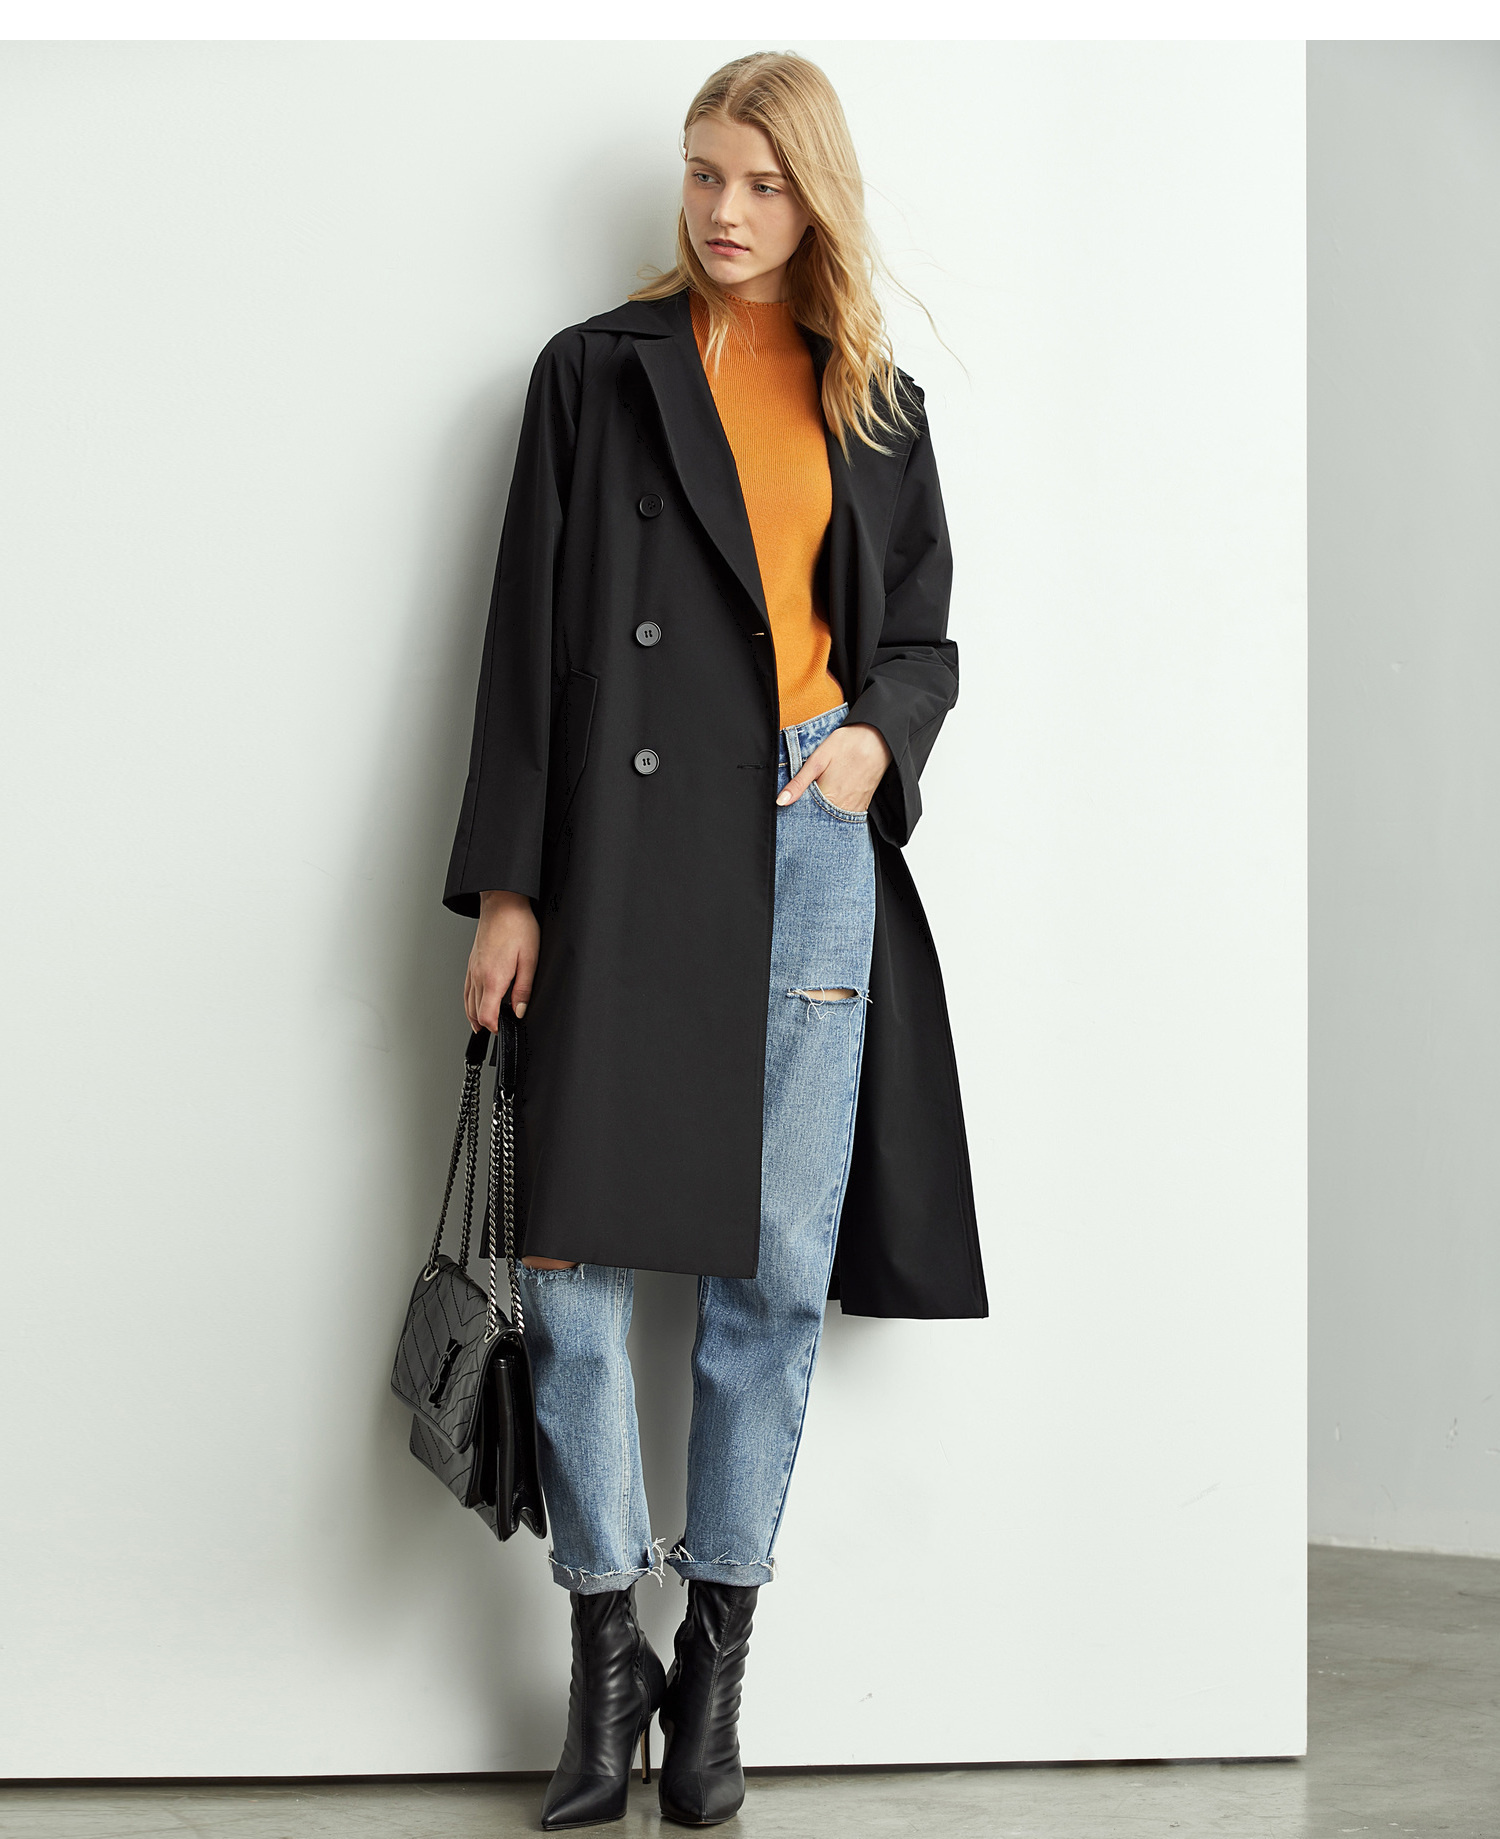 Amii Fashion Autumn Trench Coat Women Elegant Lapel Solid Loose With Belt Female Casual Mid Long Jacket 11960110